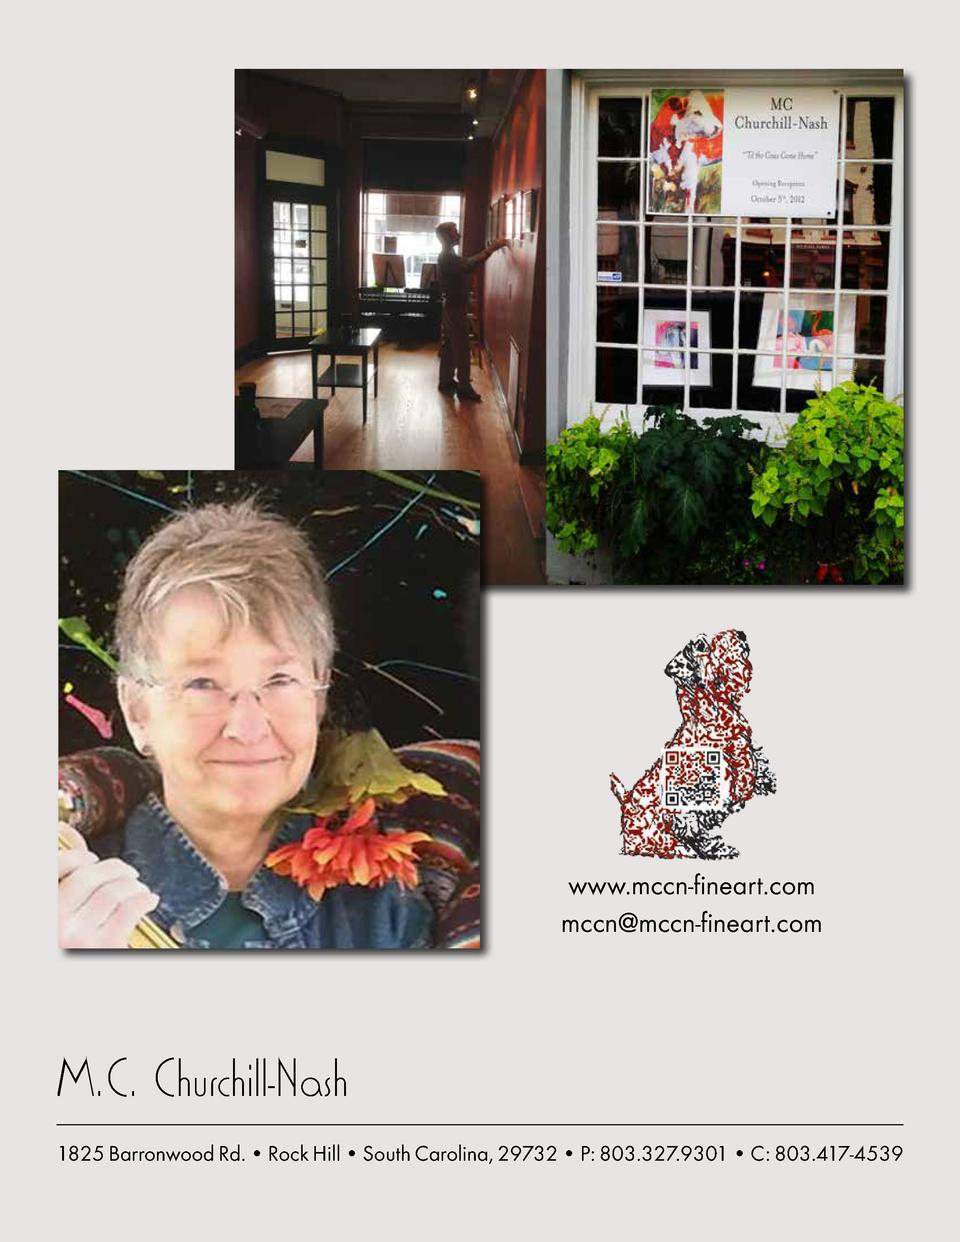 www.mccn-fineart.com mccn mccn-fineart.com  M.C. Churchill-Nash 1825 Barronwood Rd.     Rock Hill     South Carolina, 2973...